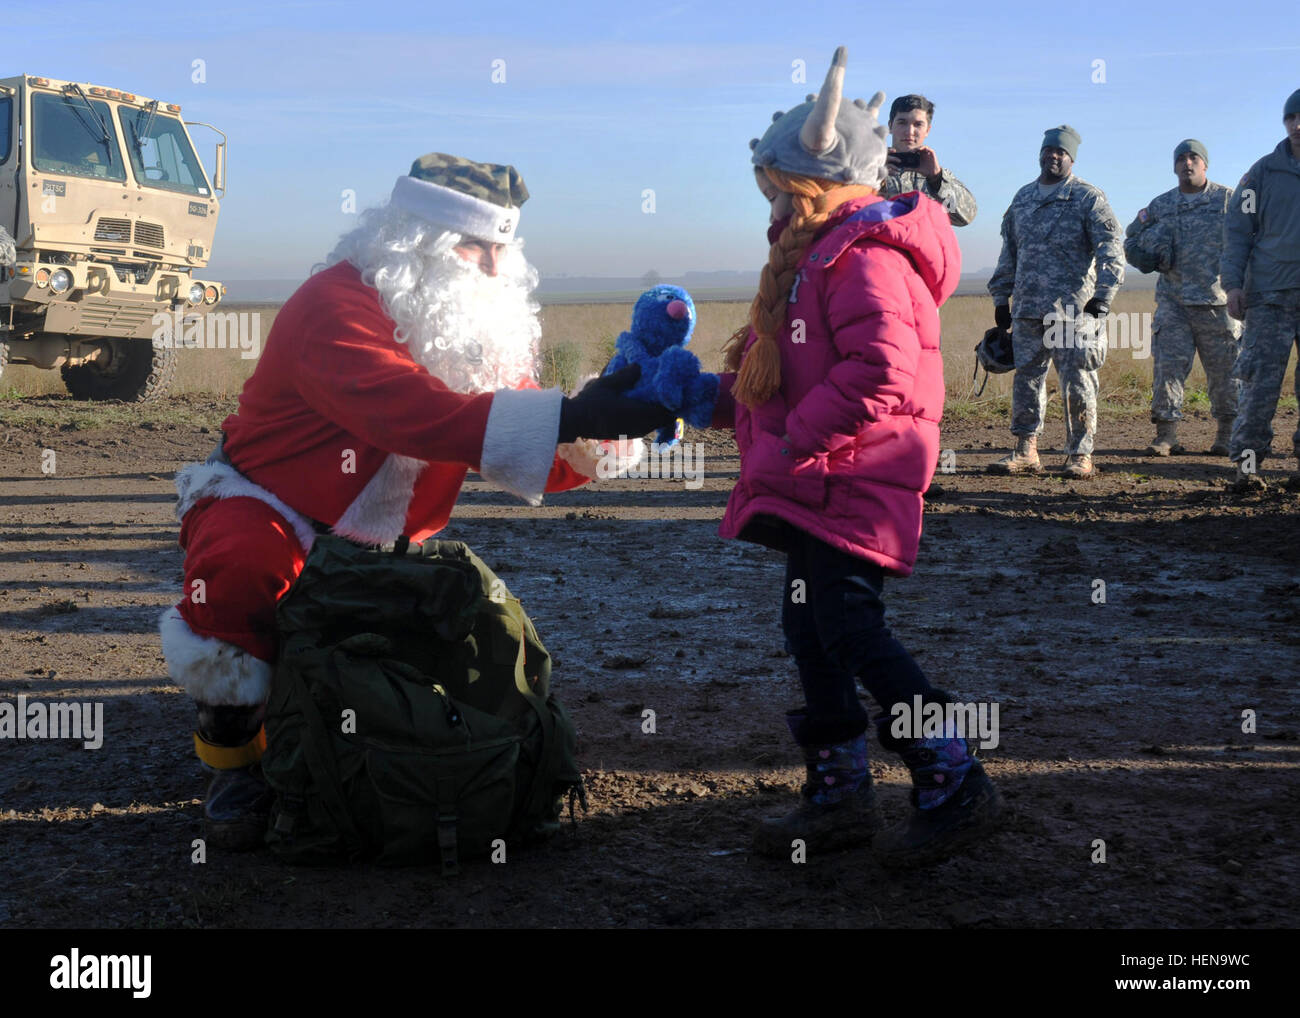 Santa Claus hands out toys to children after performing an airborne jump at the Alzey Drop Zone near Kaiserslautern - Stock Image